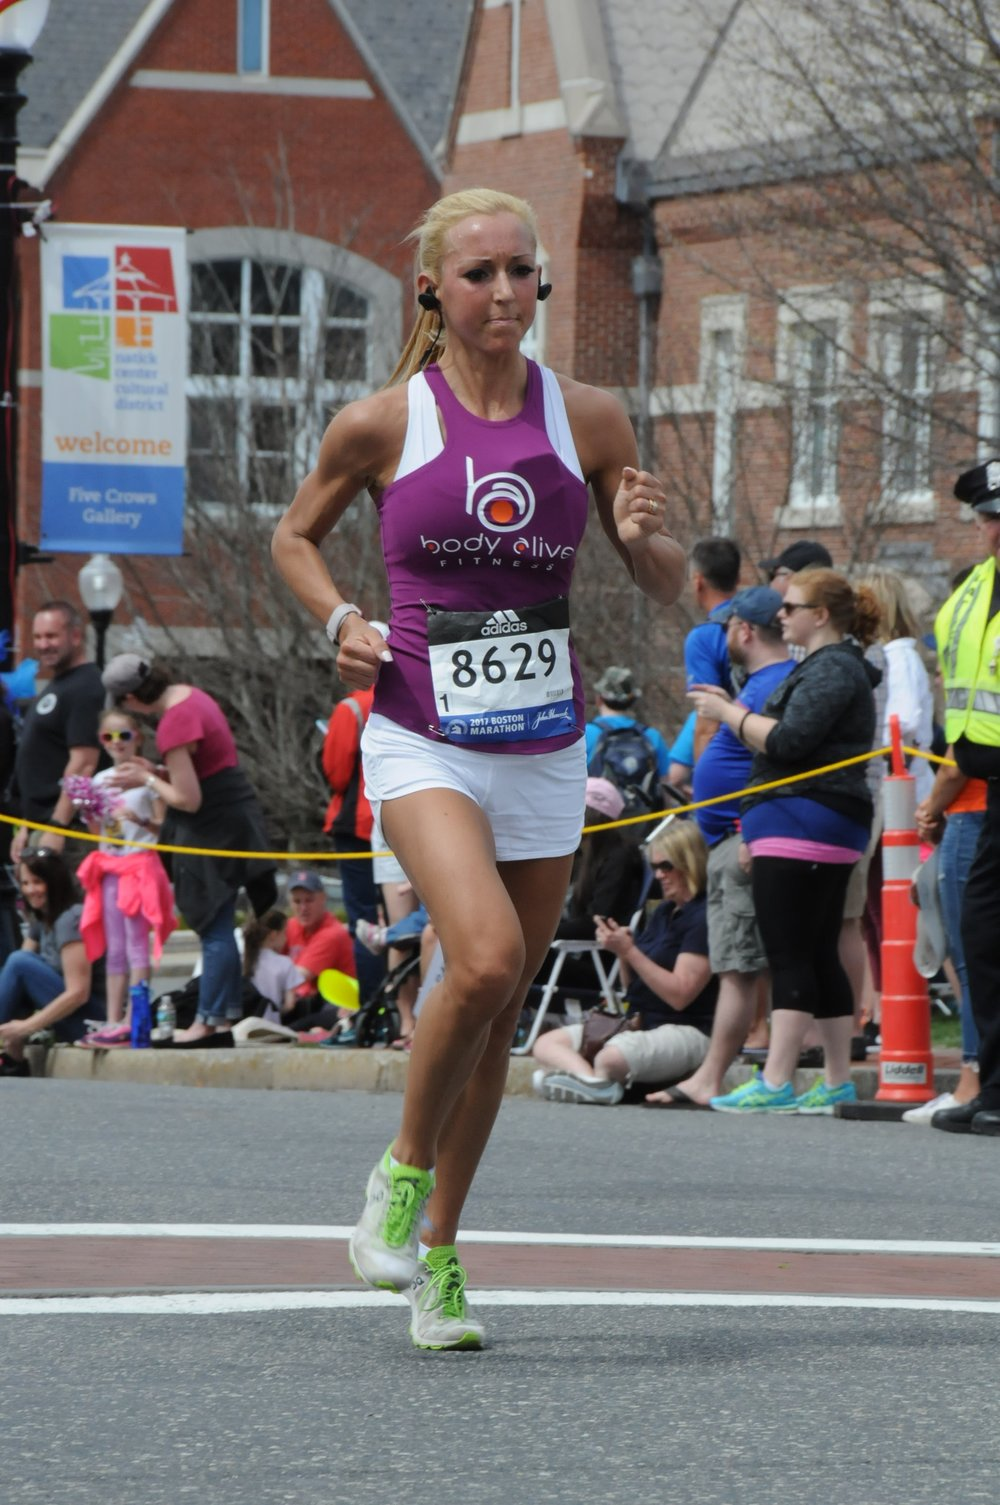 Megan Del Corral, Runner